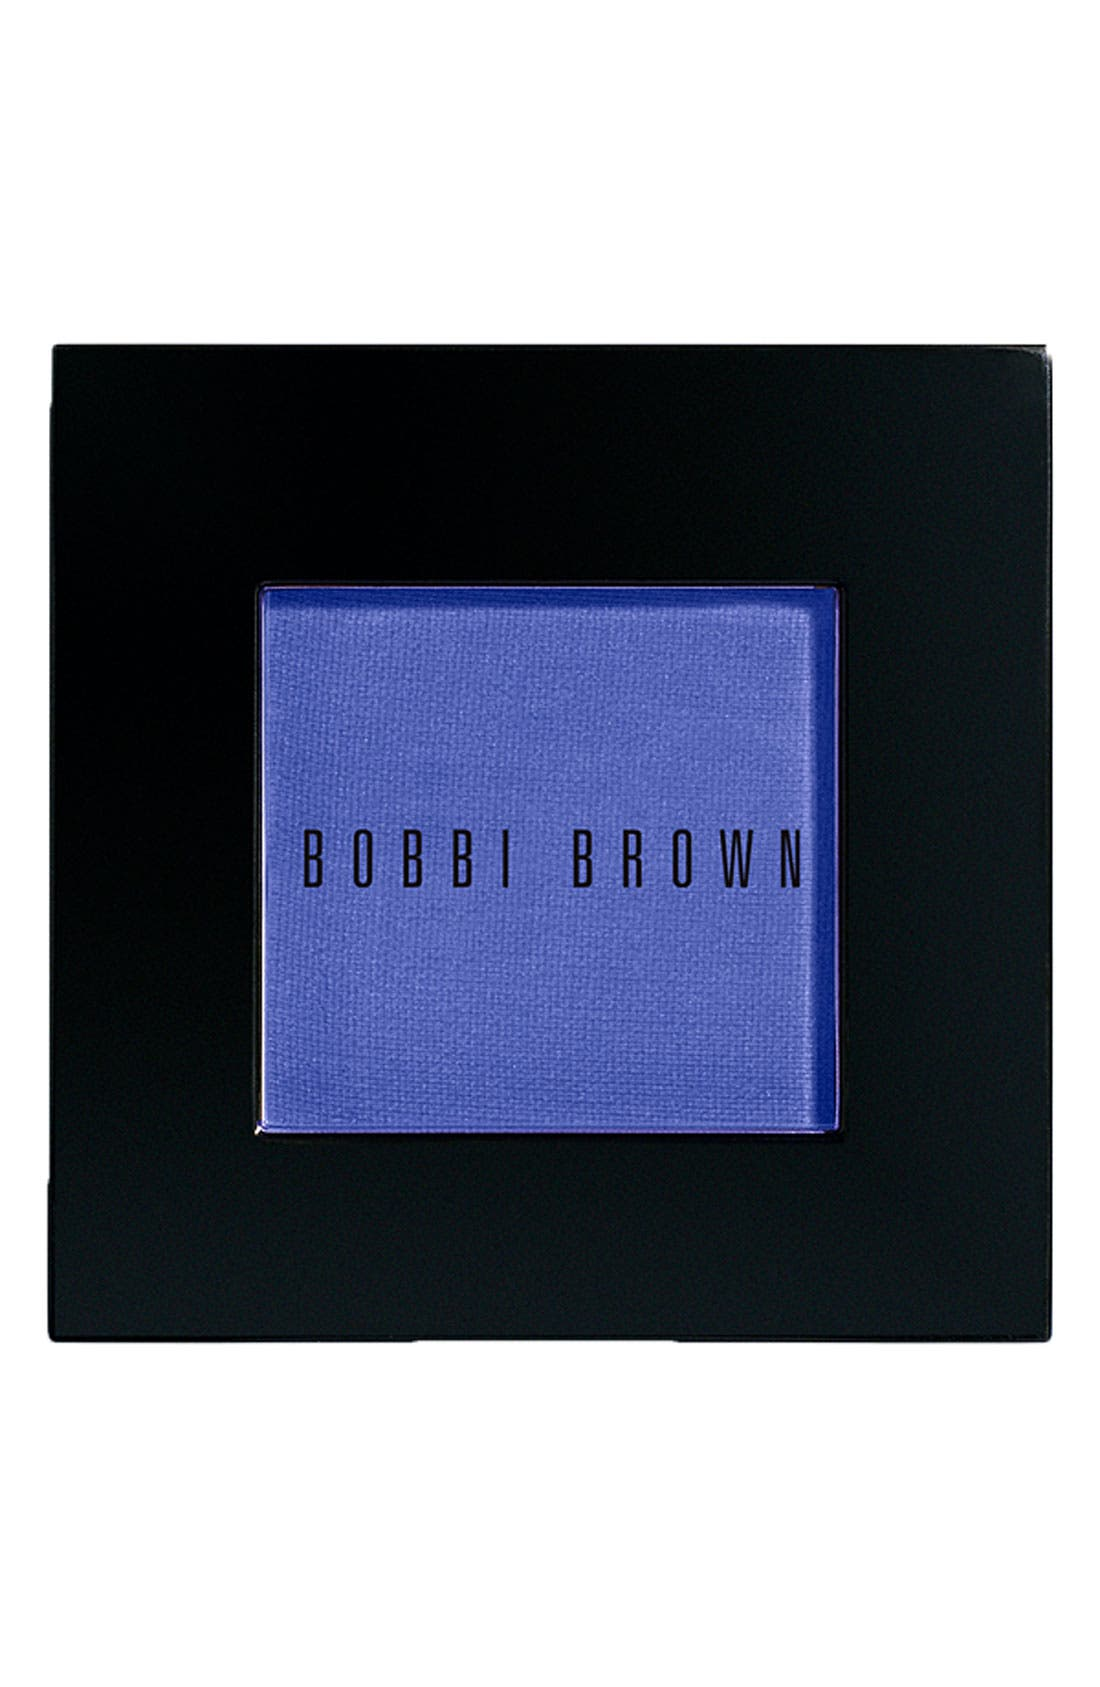 Bobbi Brown Eyeshadow